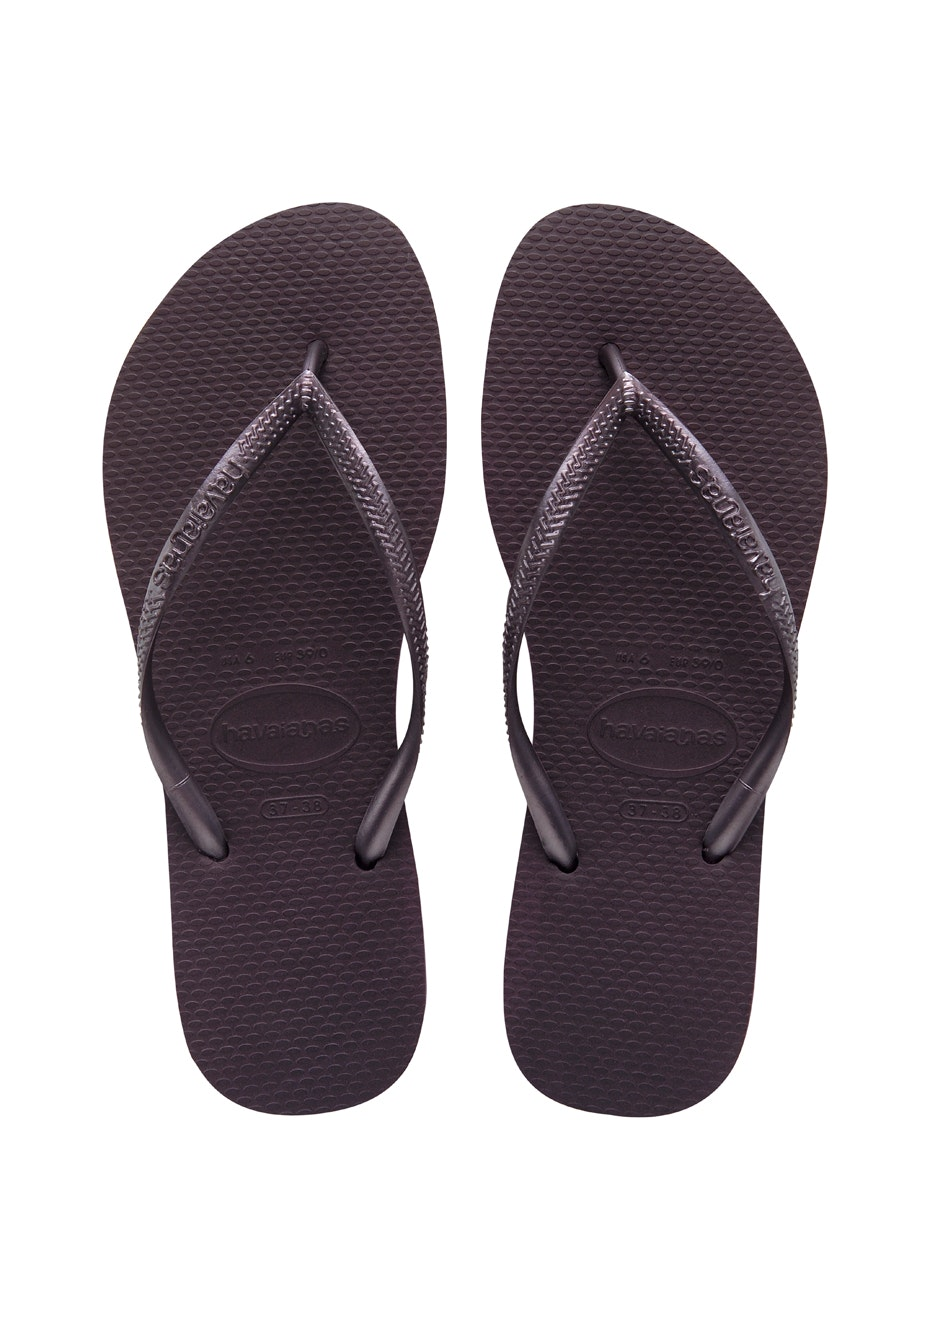 Havaianas Womens - Slim 4924 - Grape Wine